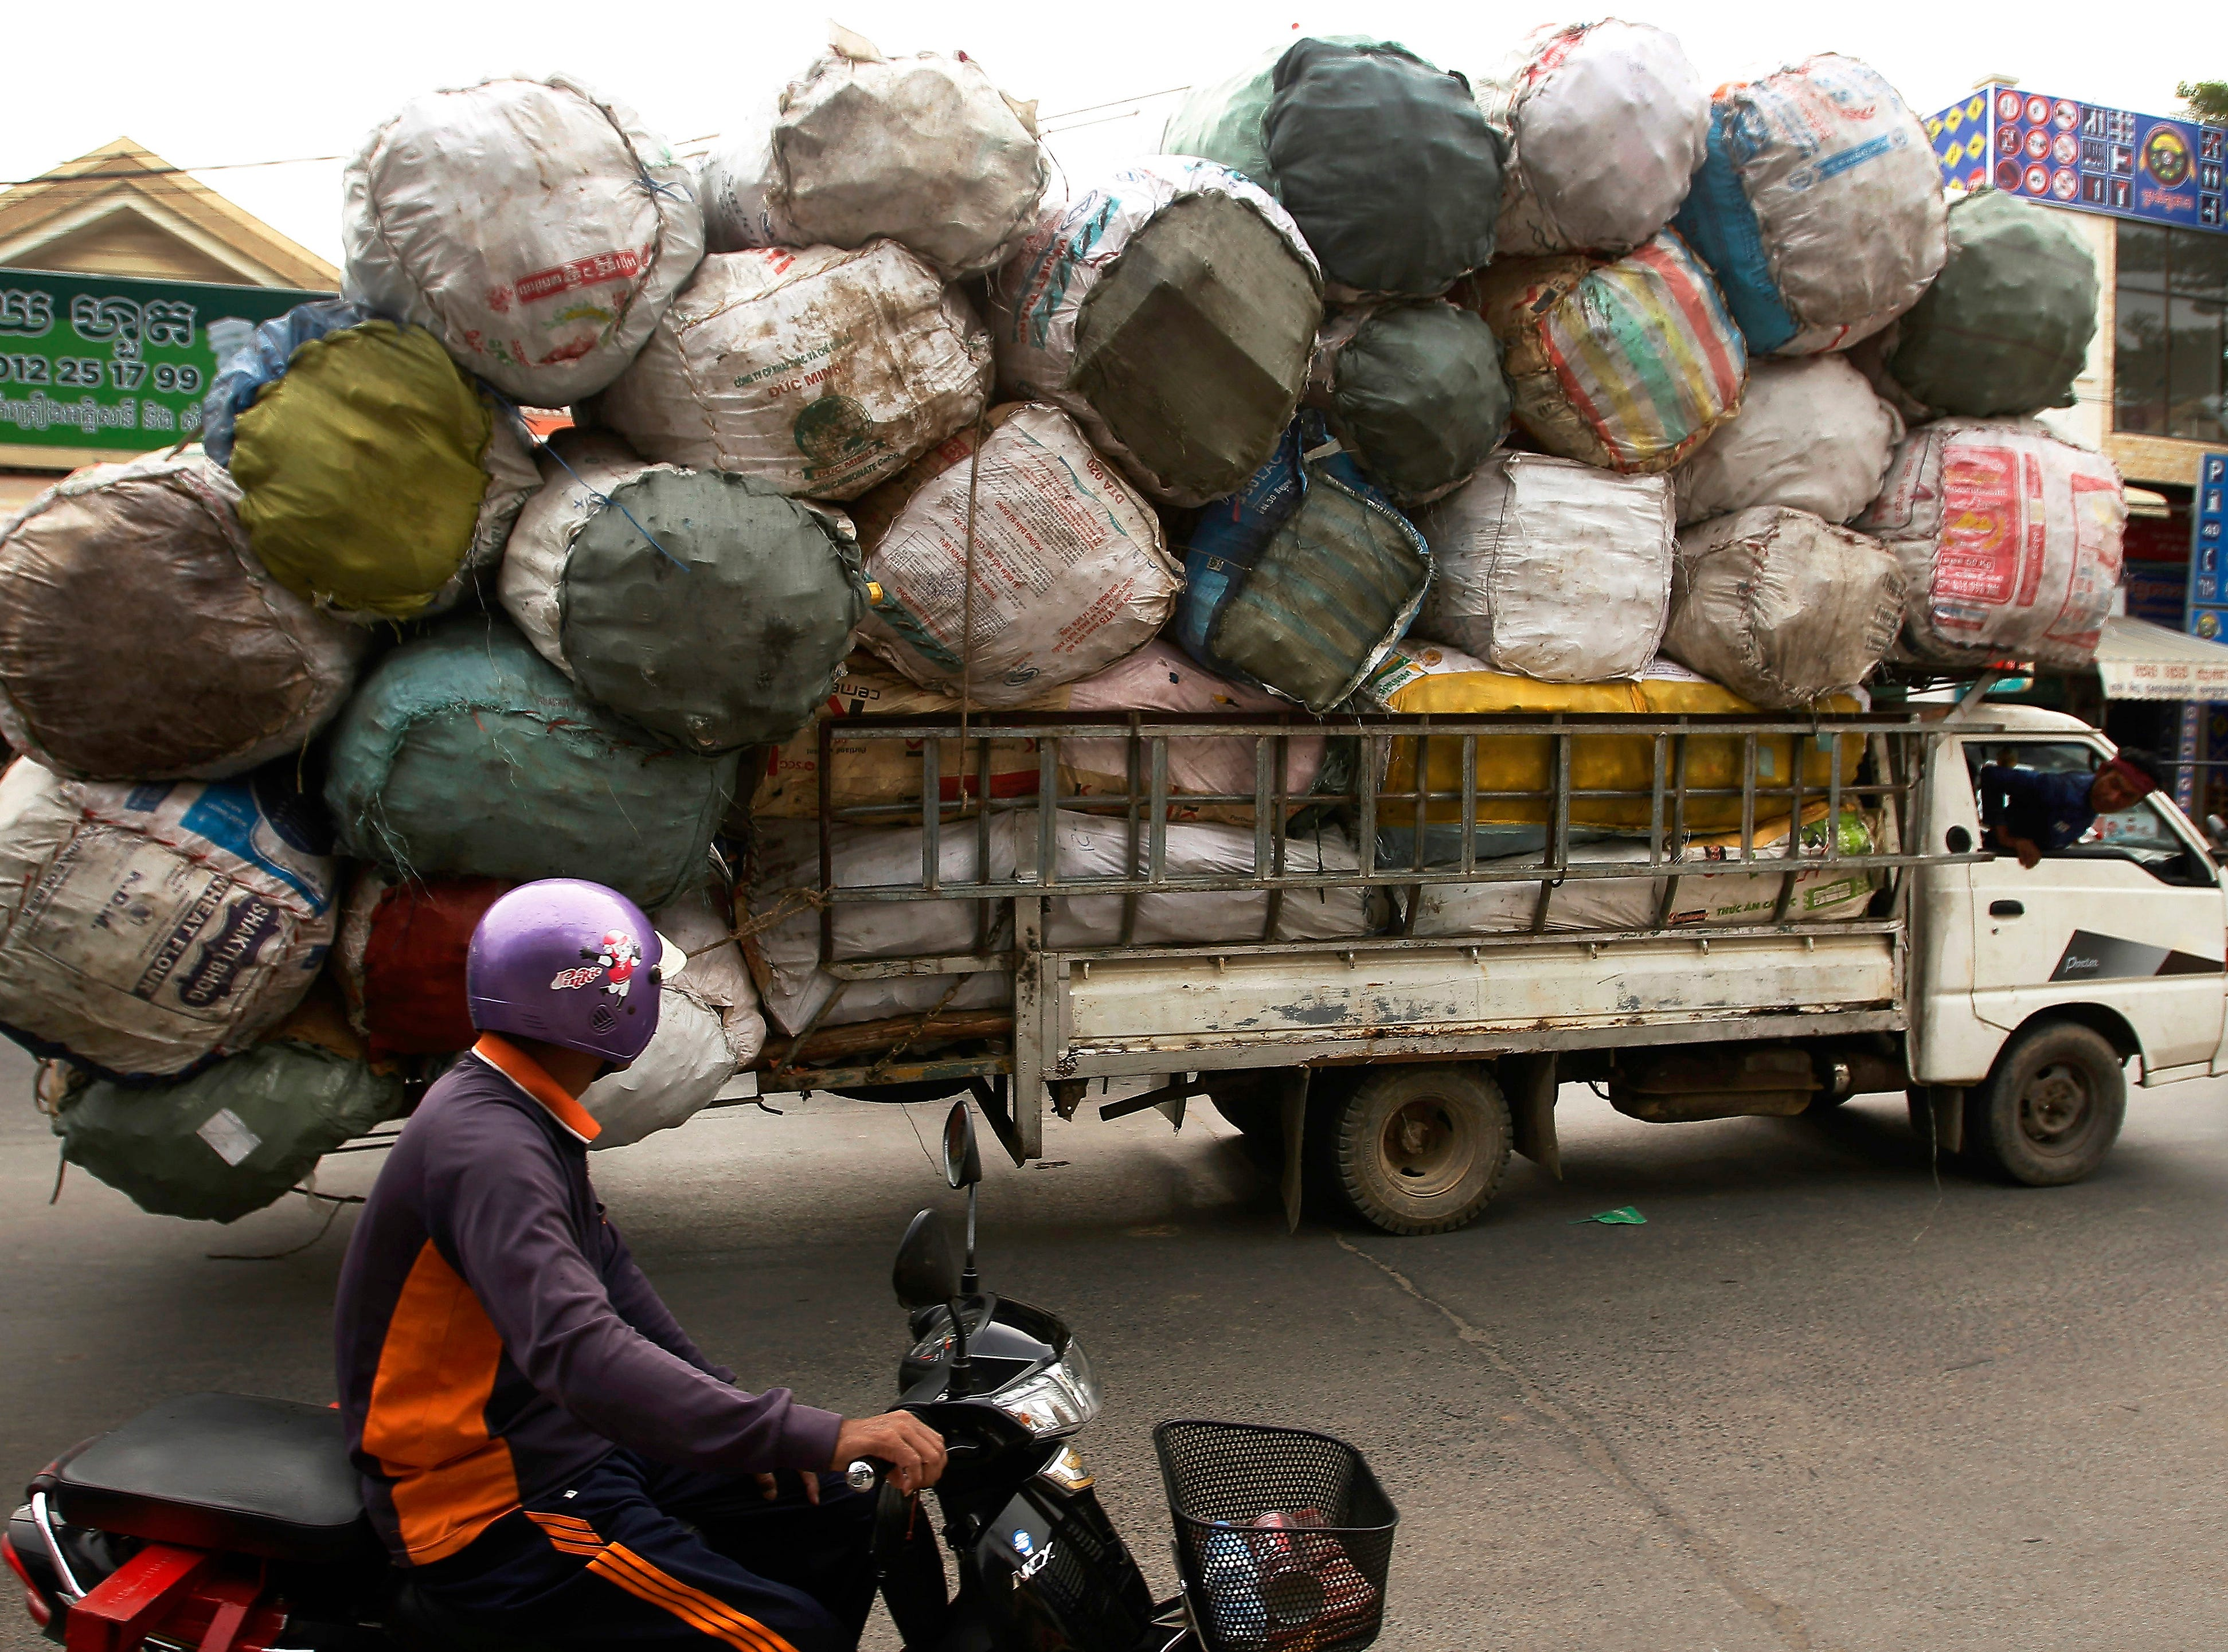 A truck overloaded with scrap materials passes by on a street in downtown Phnom Penh, Cambodia, Saturday, April 27, 2019.